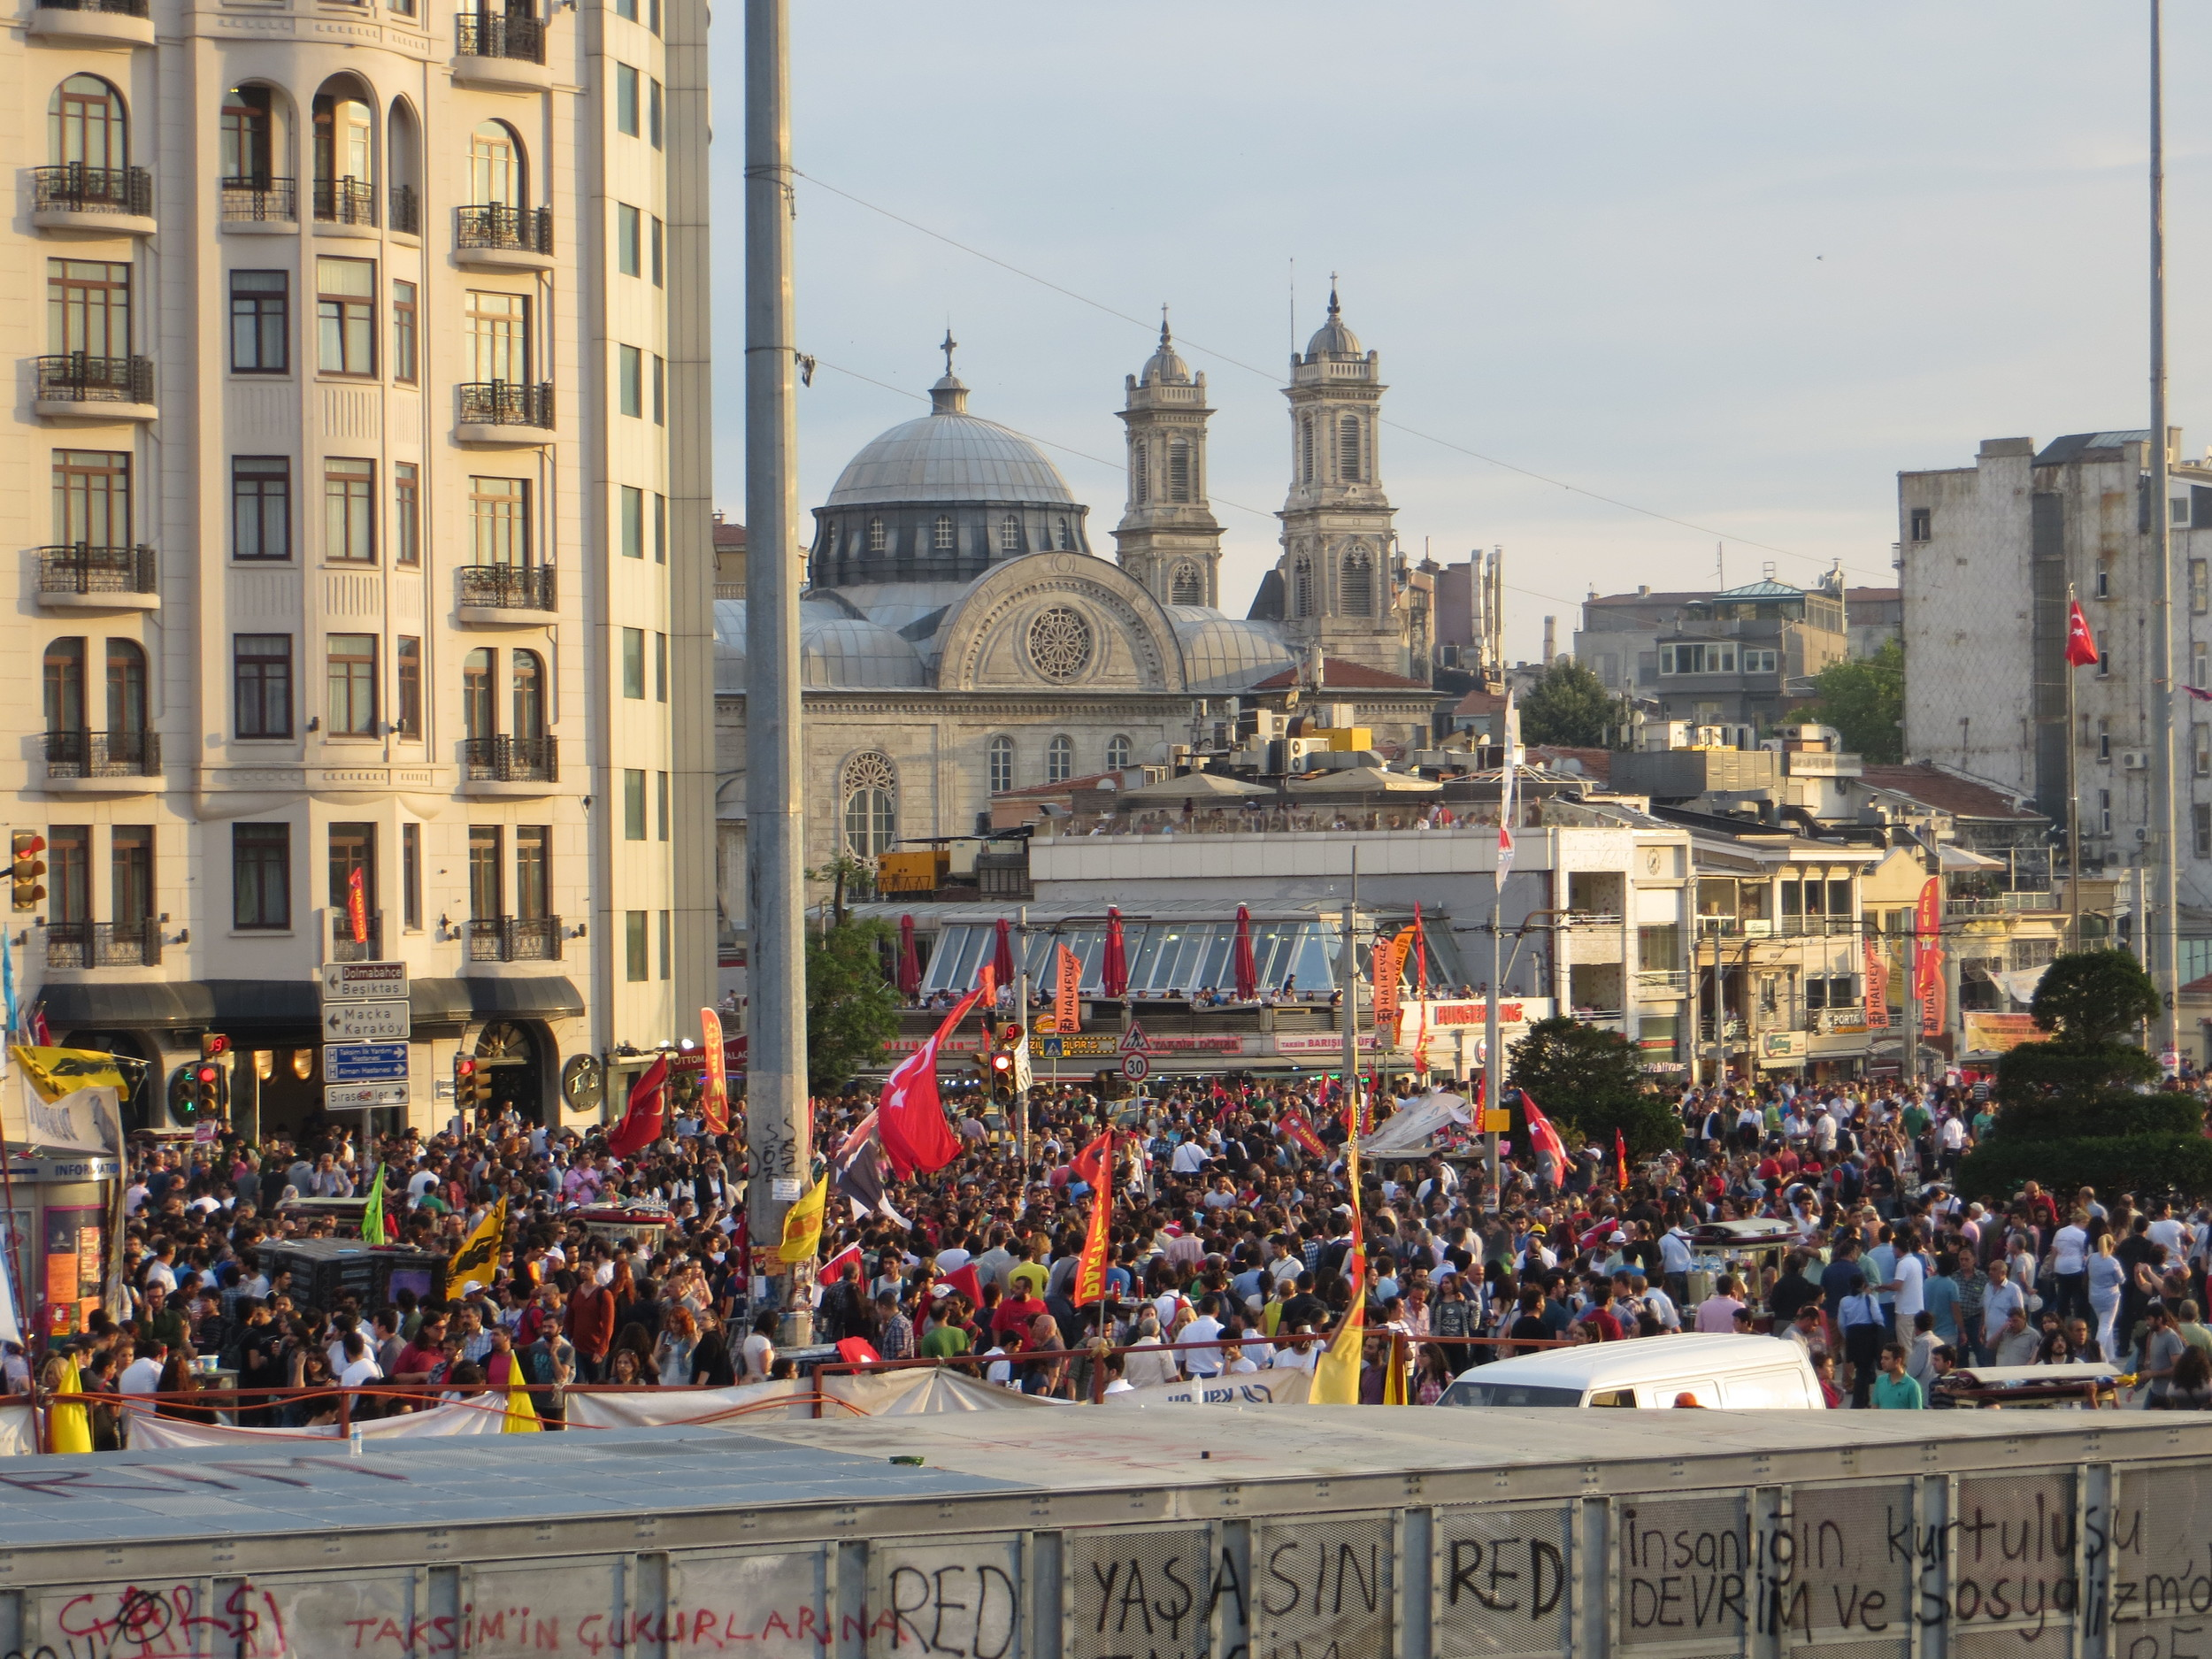 The view of Taksim Square.